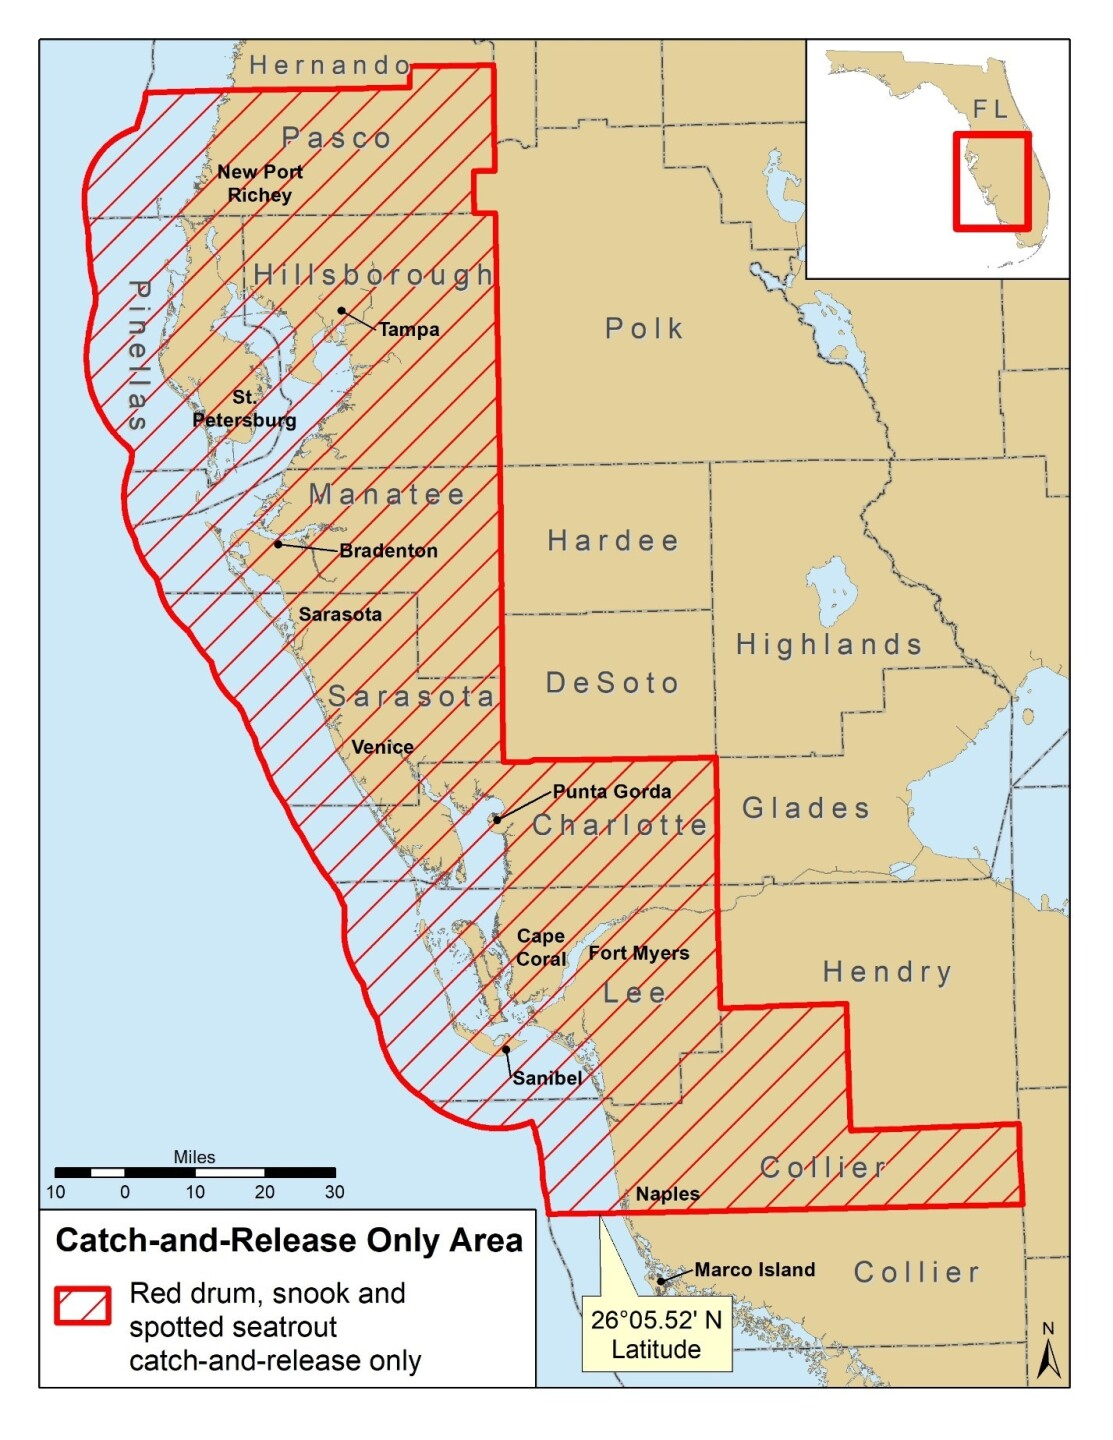 Snook, red drum and spotted seatrout catch-and-release map